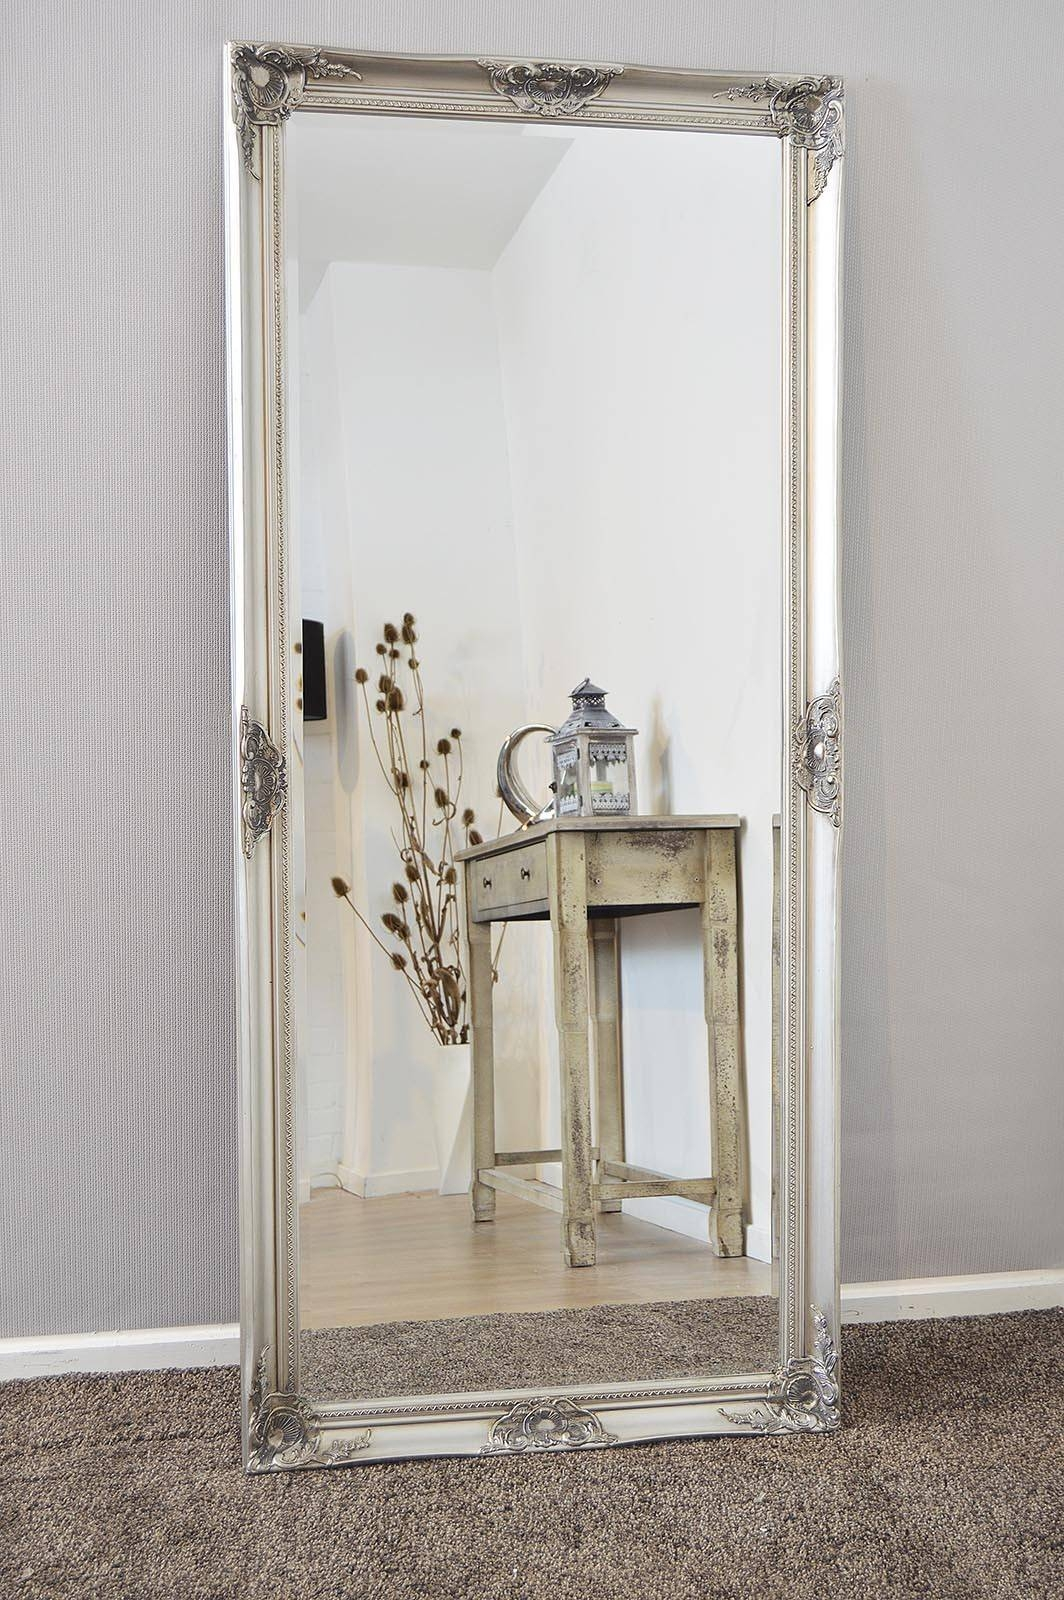 Shabby Chic Wall Mirror 40 Nice Decorating With Vintage Shabby with Shabby Chic Full Length Mirrors (Image 24 of 25)